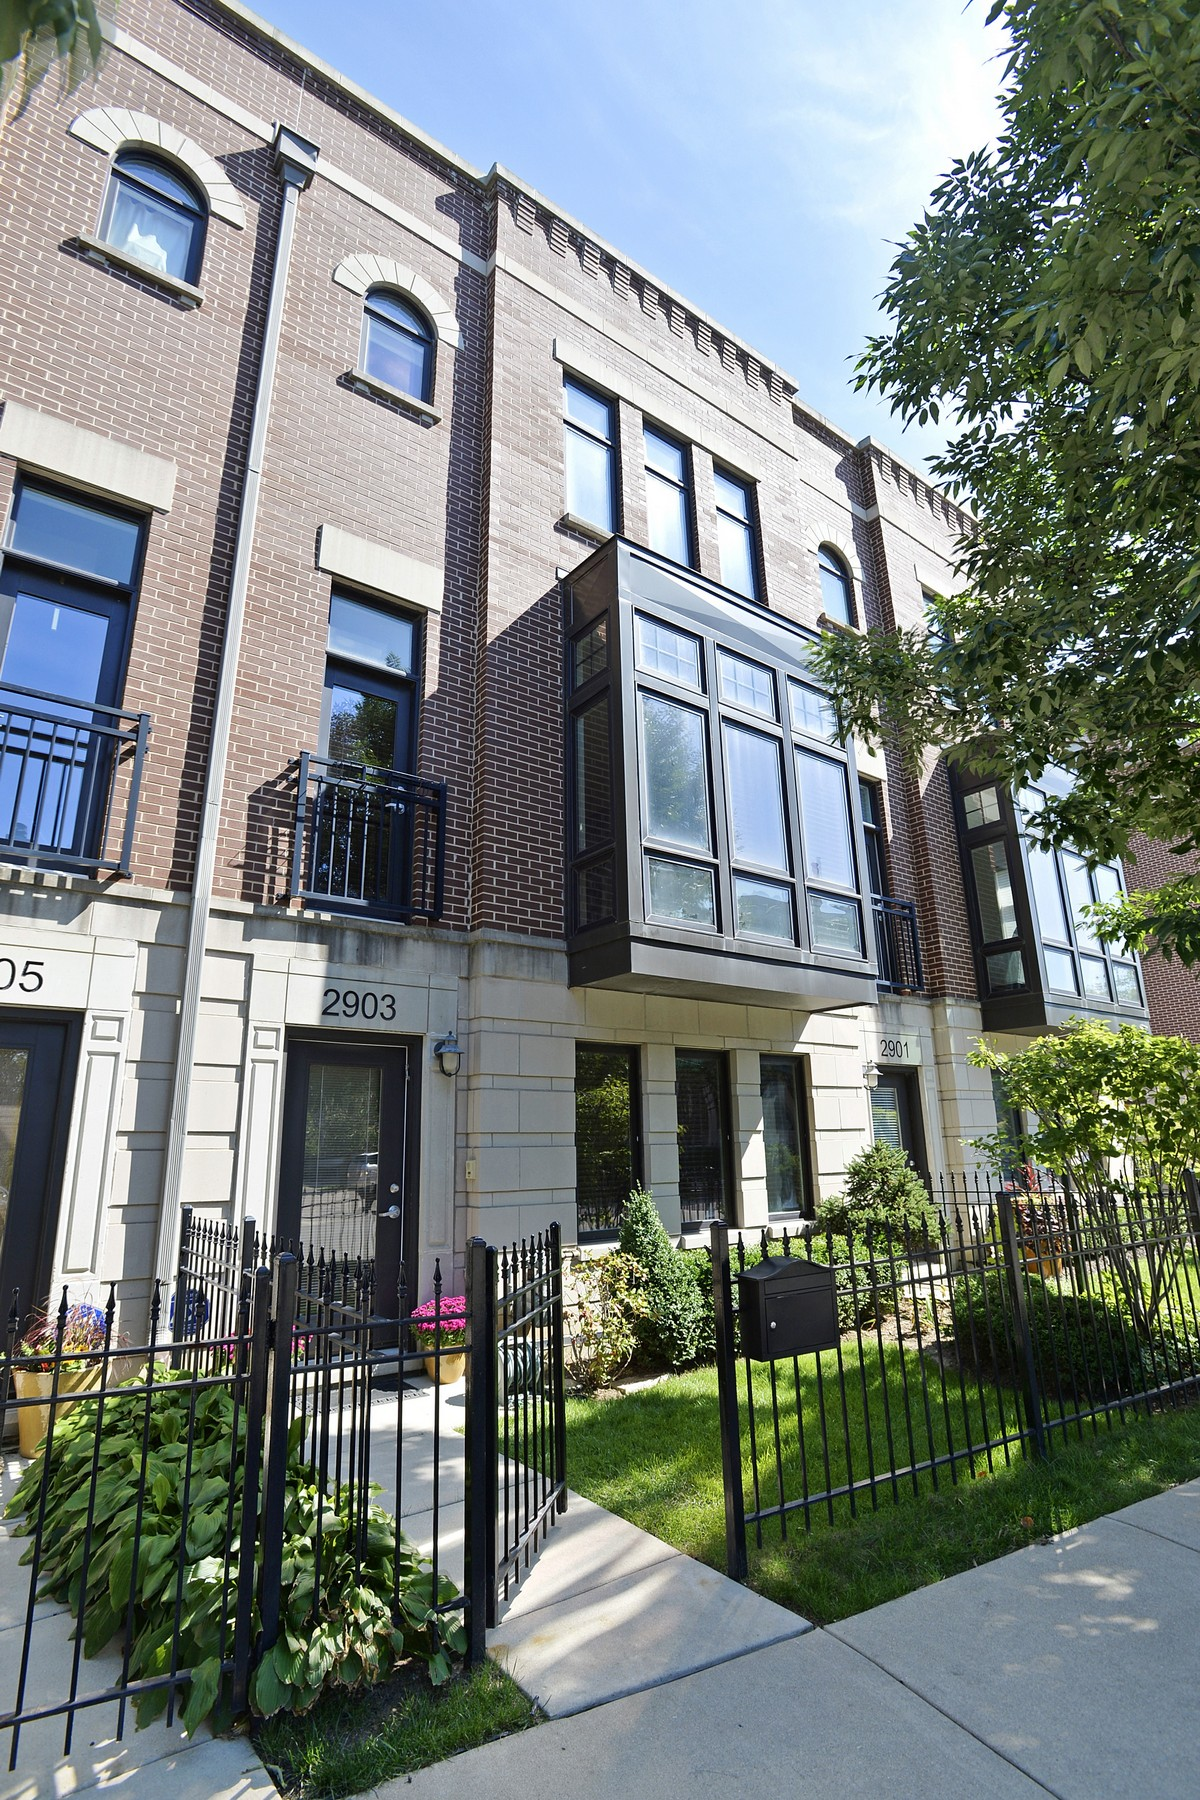 Property For Sale at Gorgeous Brick Townhome